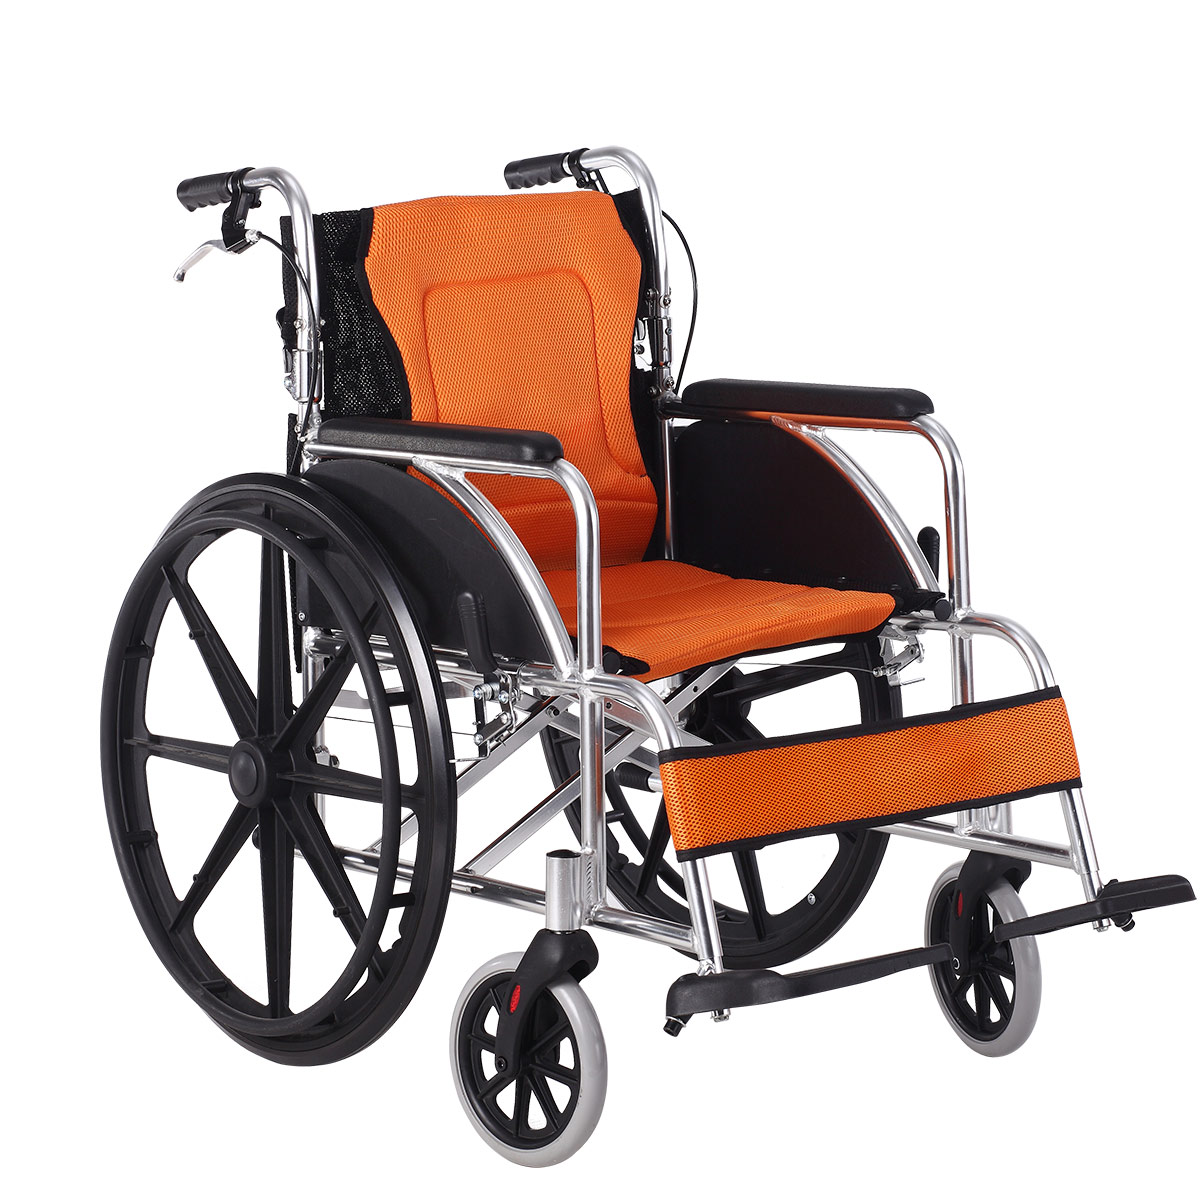 Iliad elderly YC6200X aluminum alloy manual wheelchair bedsore cushion lightweight wheelchair with the rehabilitation of persons with disabilities